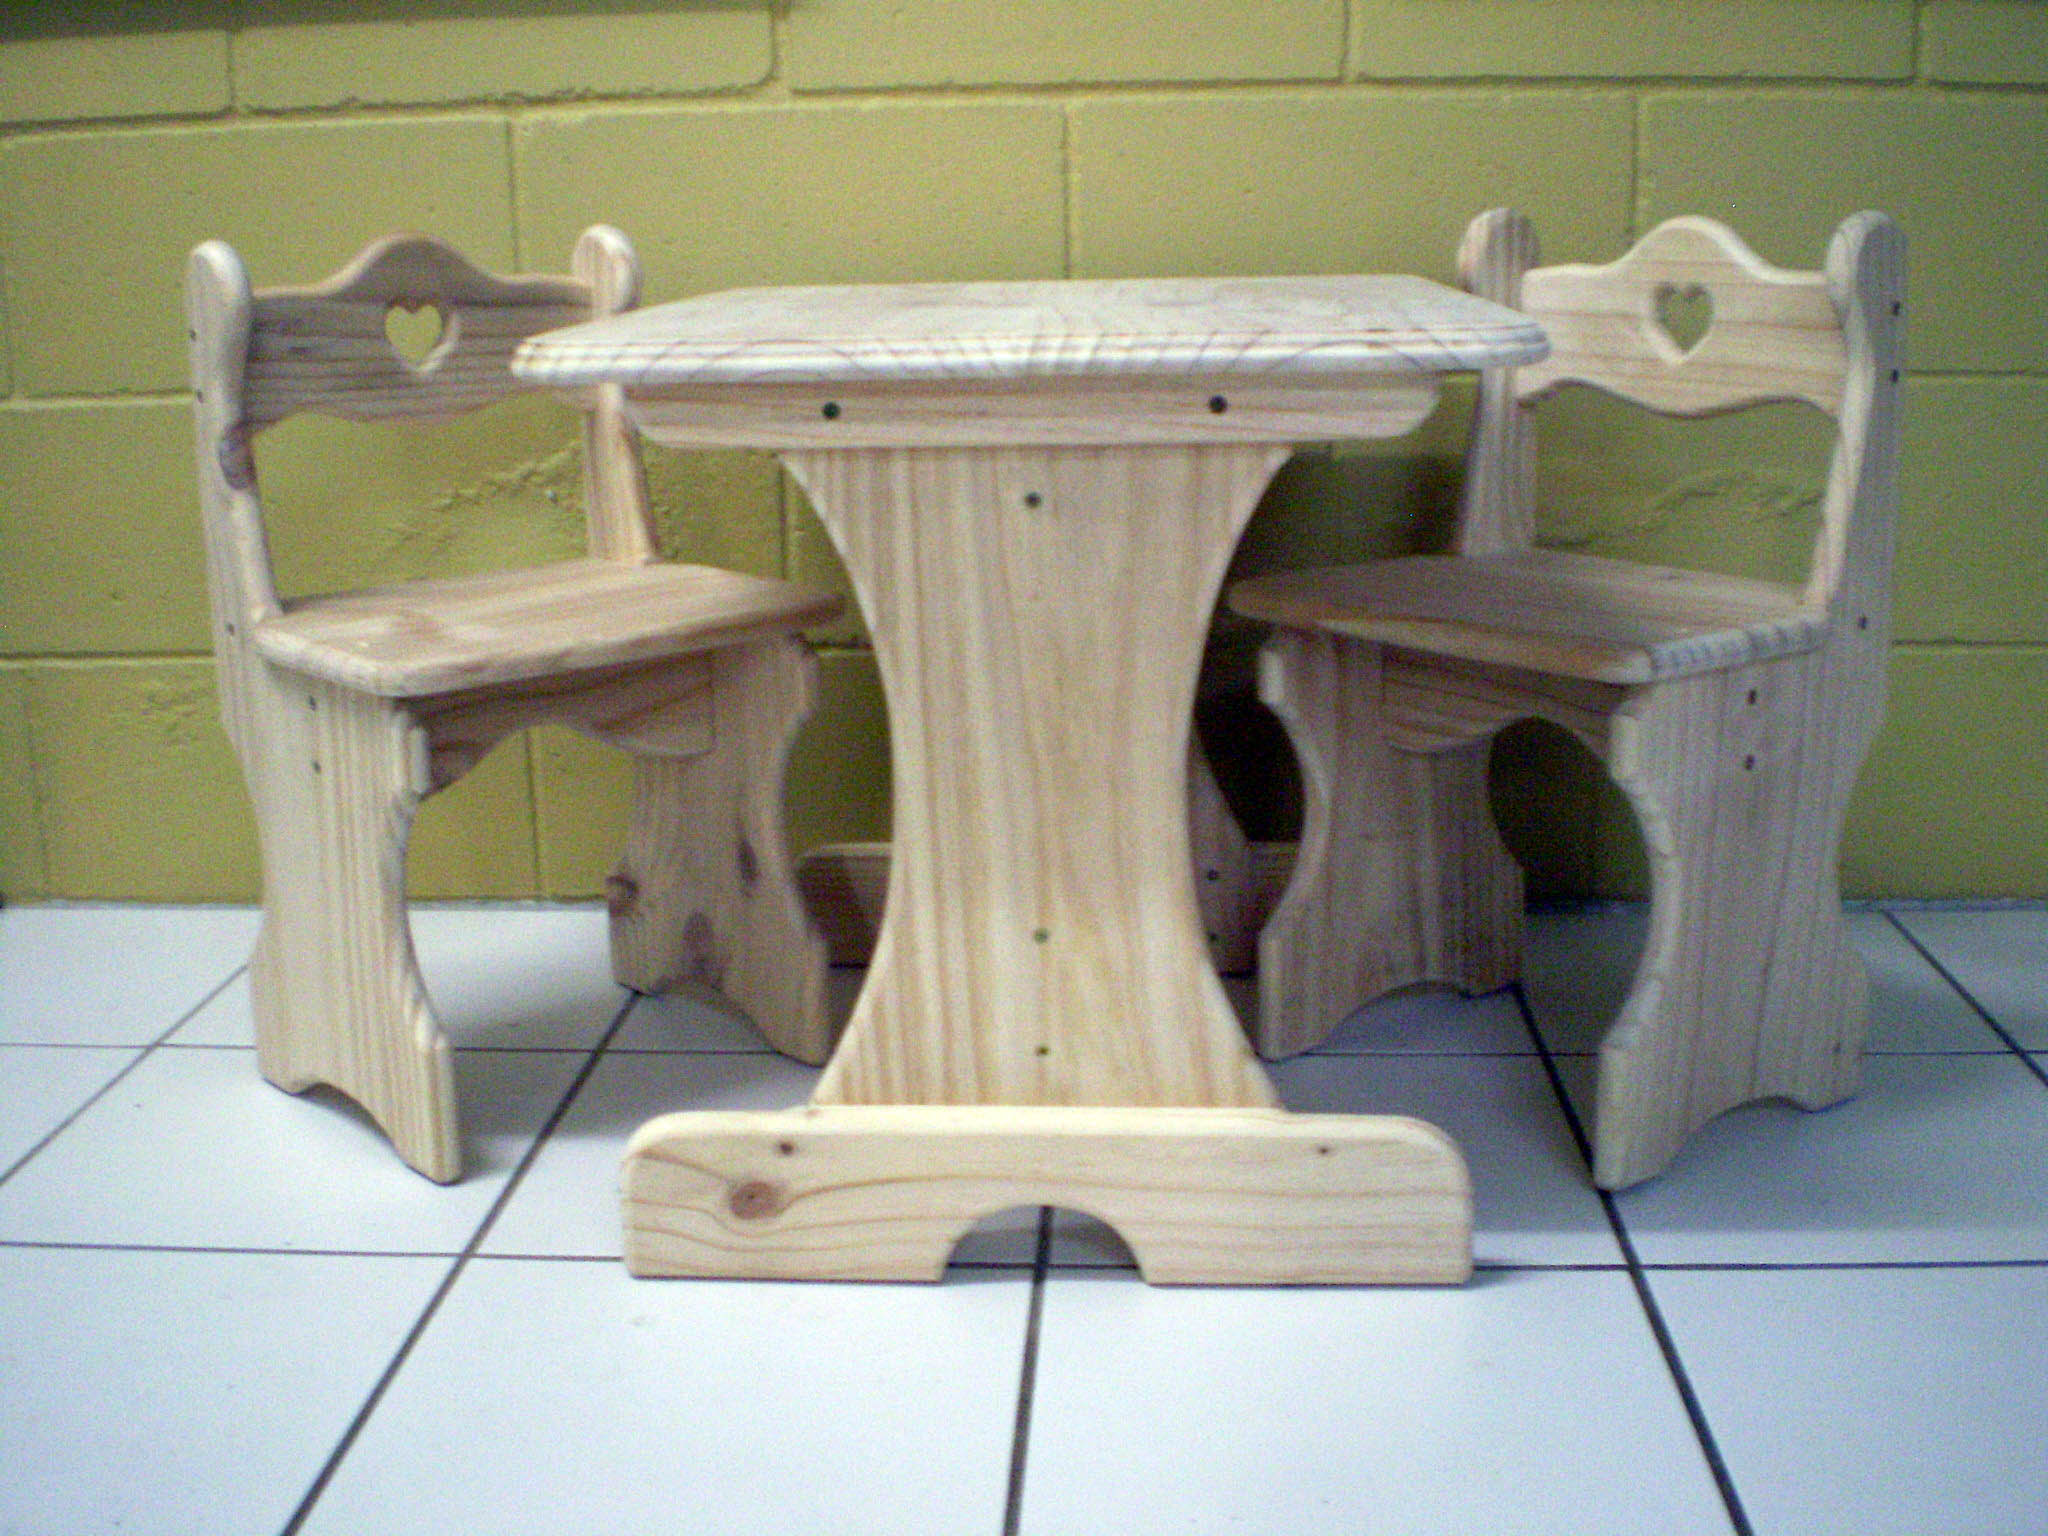 Wooden Table and chairs for children easy to make